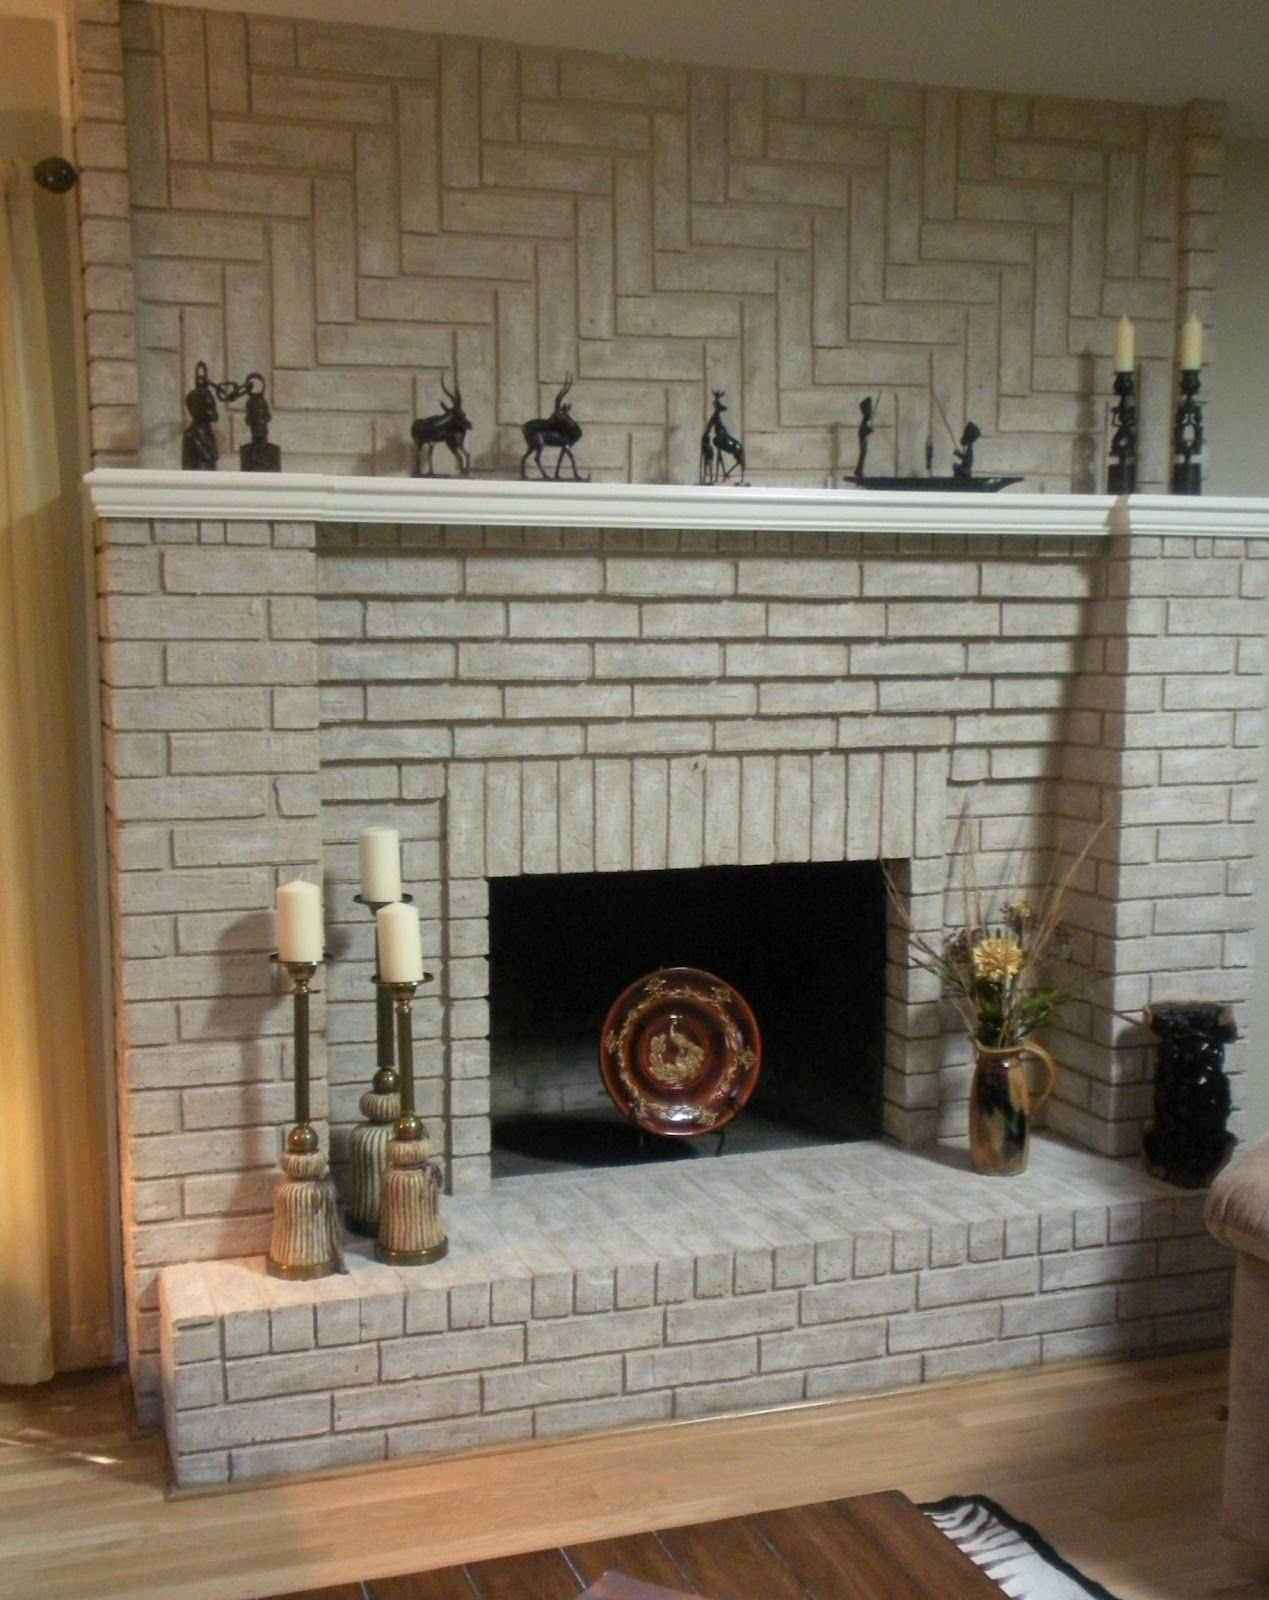 Update an older looking fireplace by painting it a chic white or